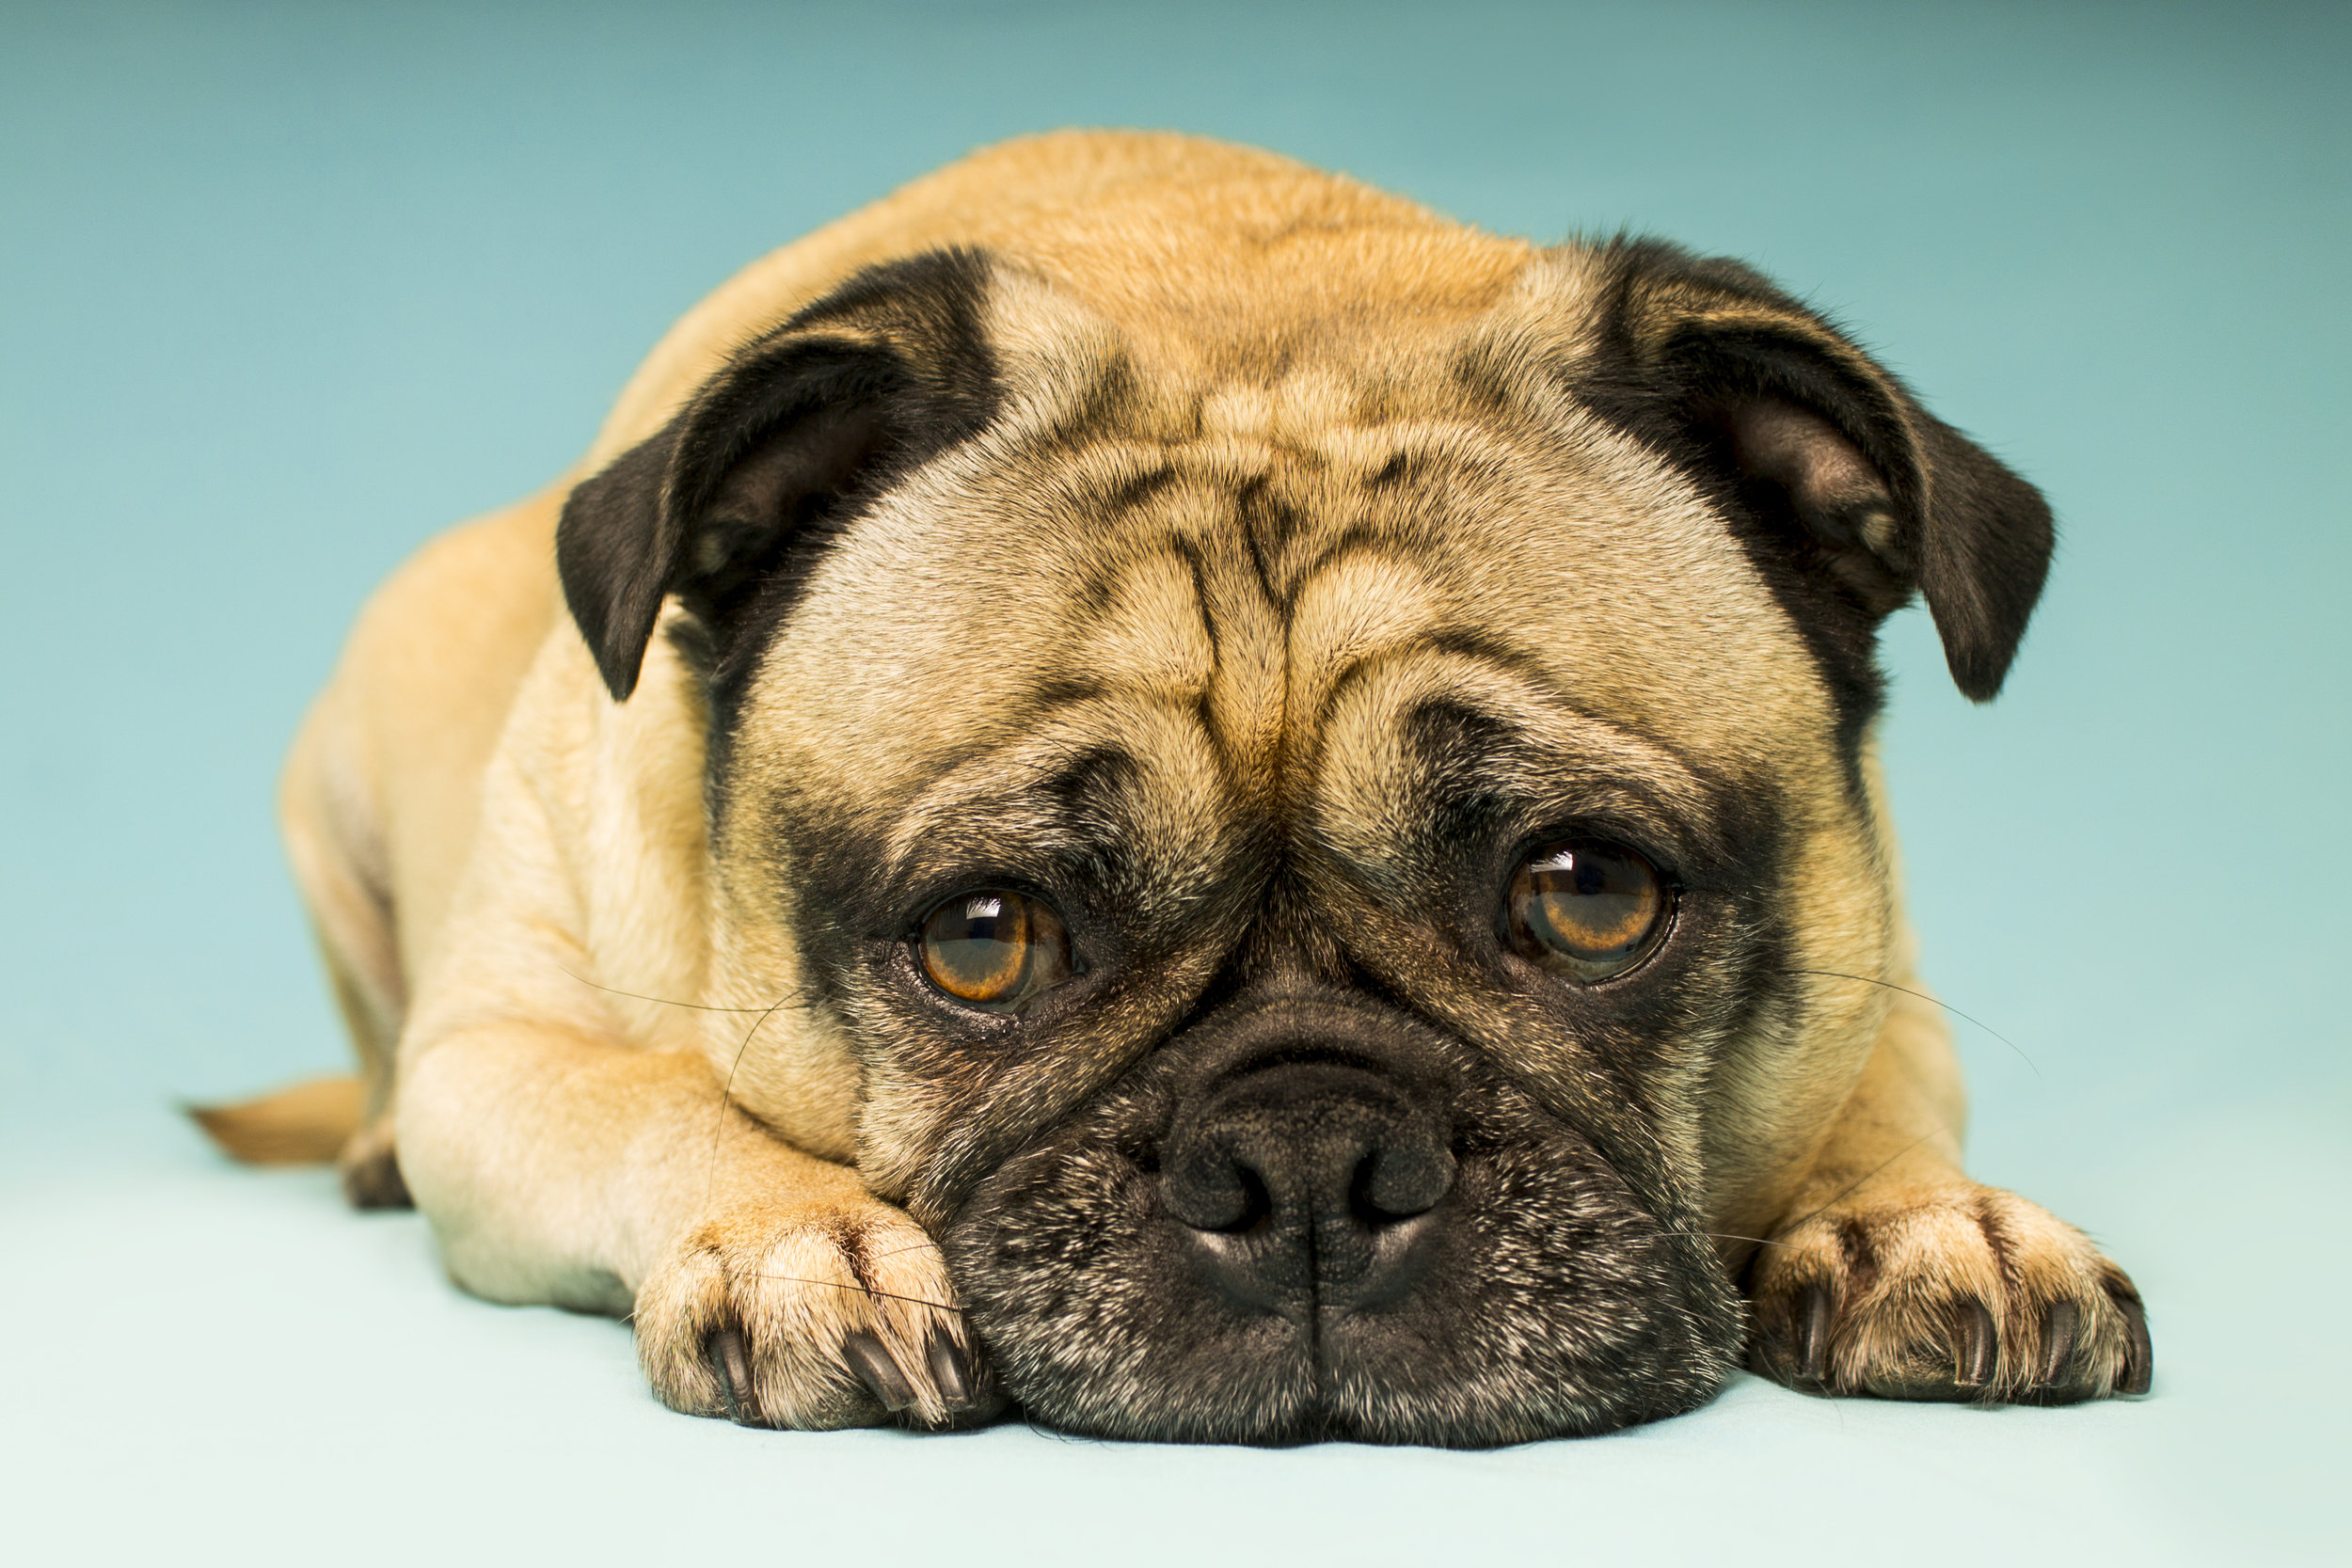 Image of a Pug Posing in Studio with Pet and Dog Photographer Brent D'Silva from Brampton, Ontario